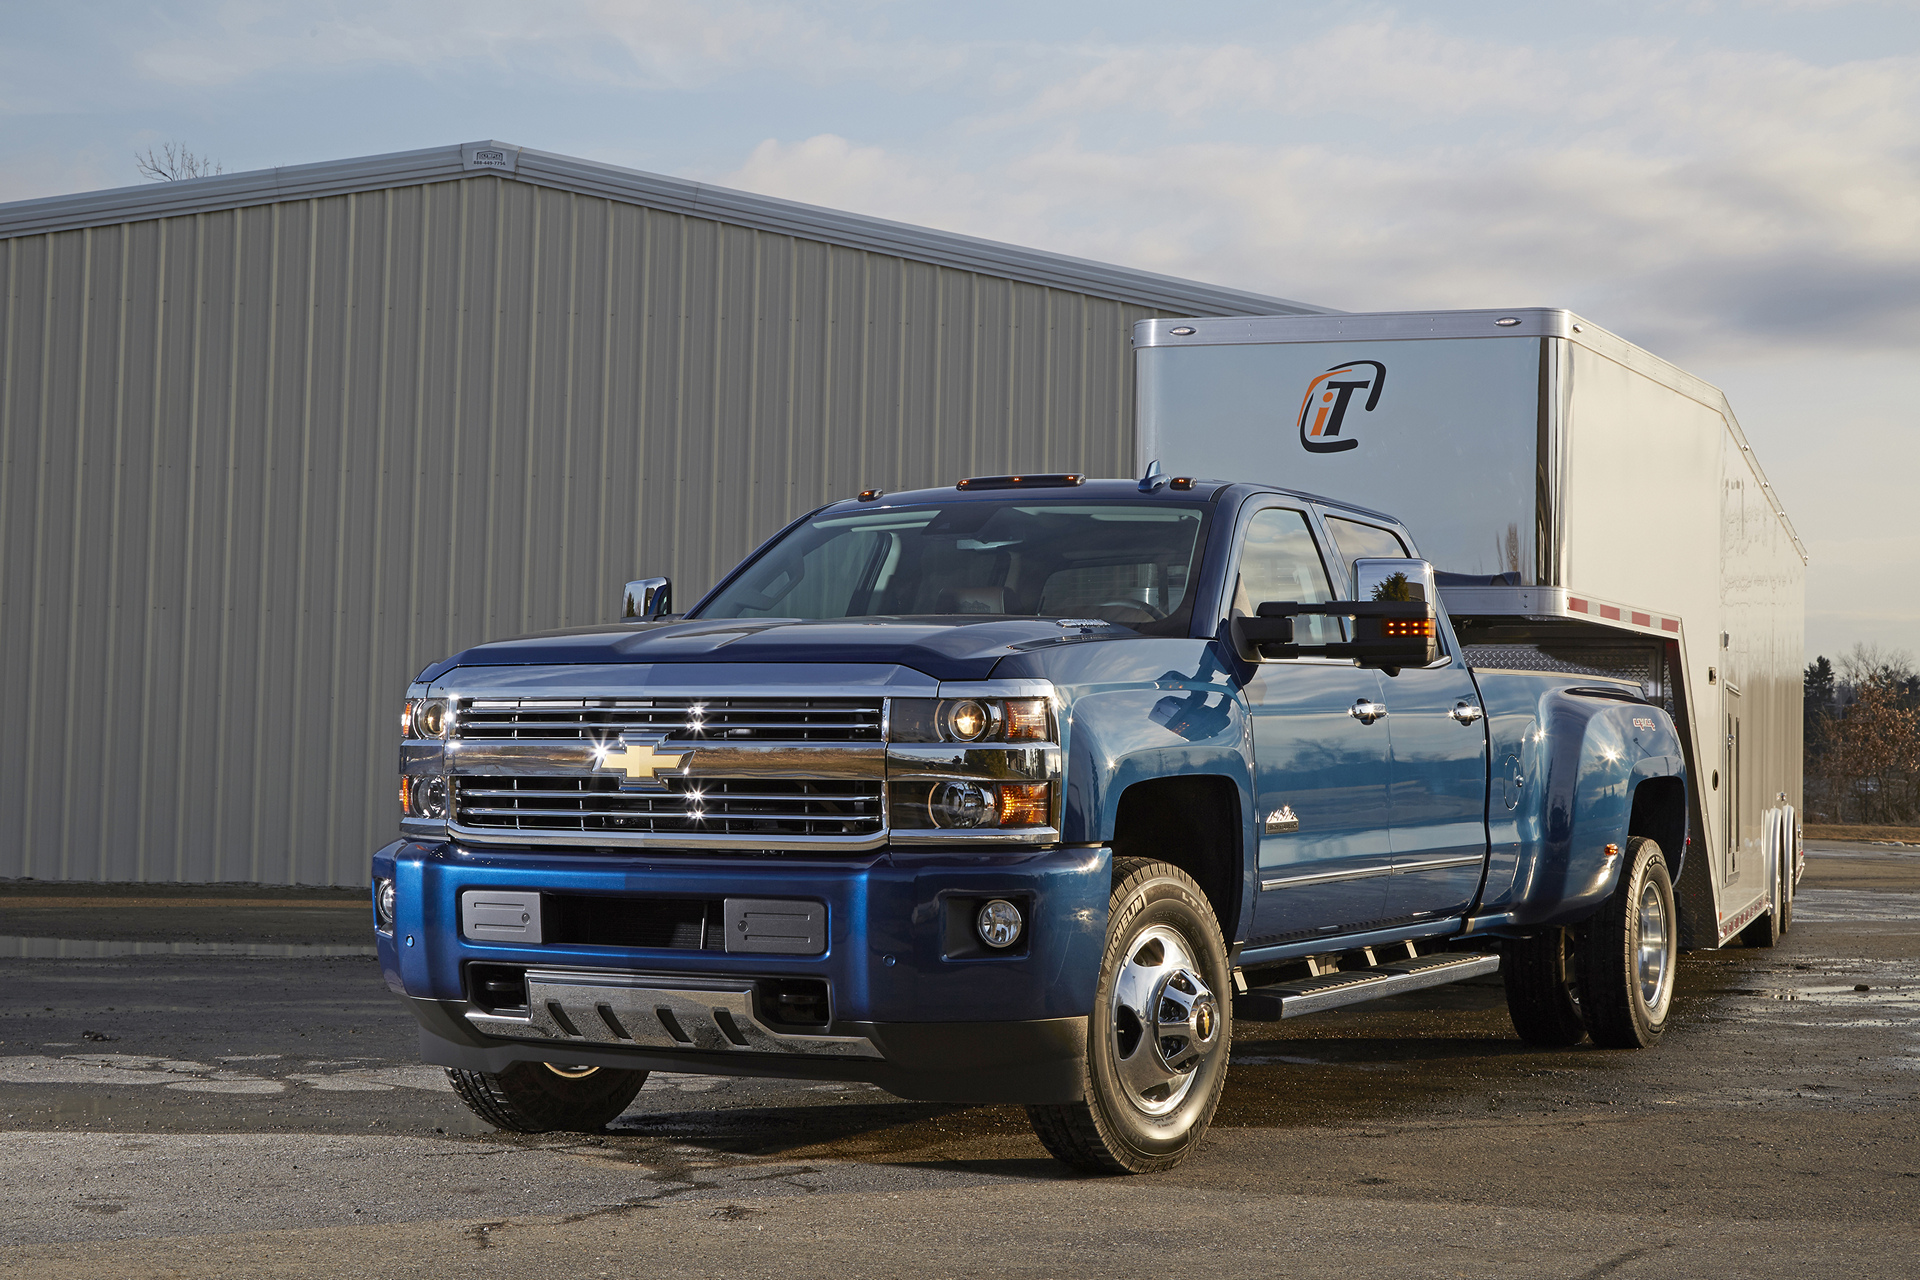 2016 chevrolet silverado hd review carrrs auto portal. Black Bedroom Furniture Sets. Home Design Ideas